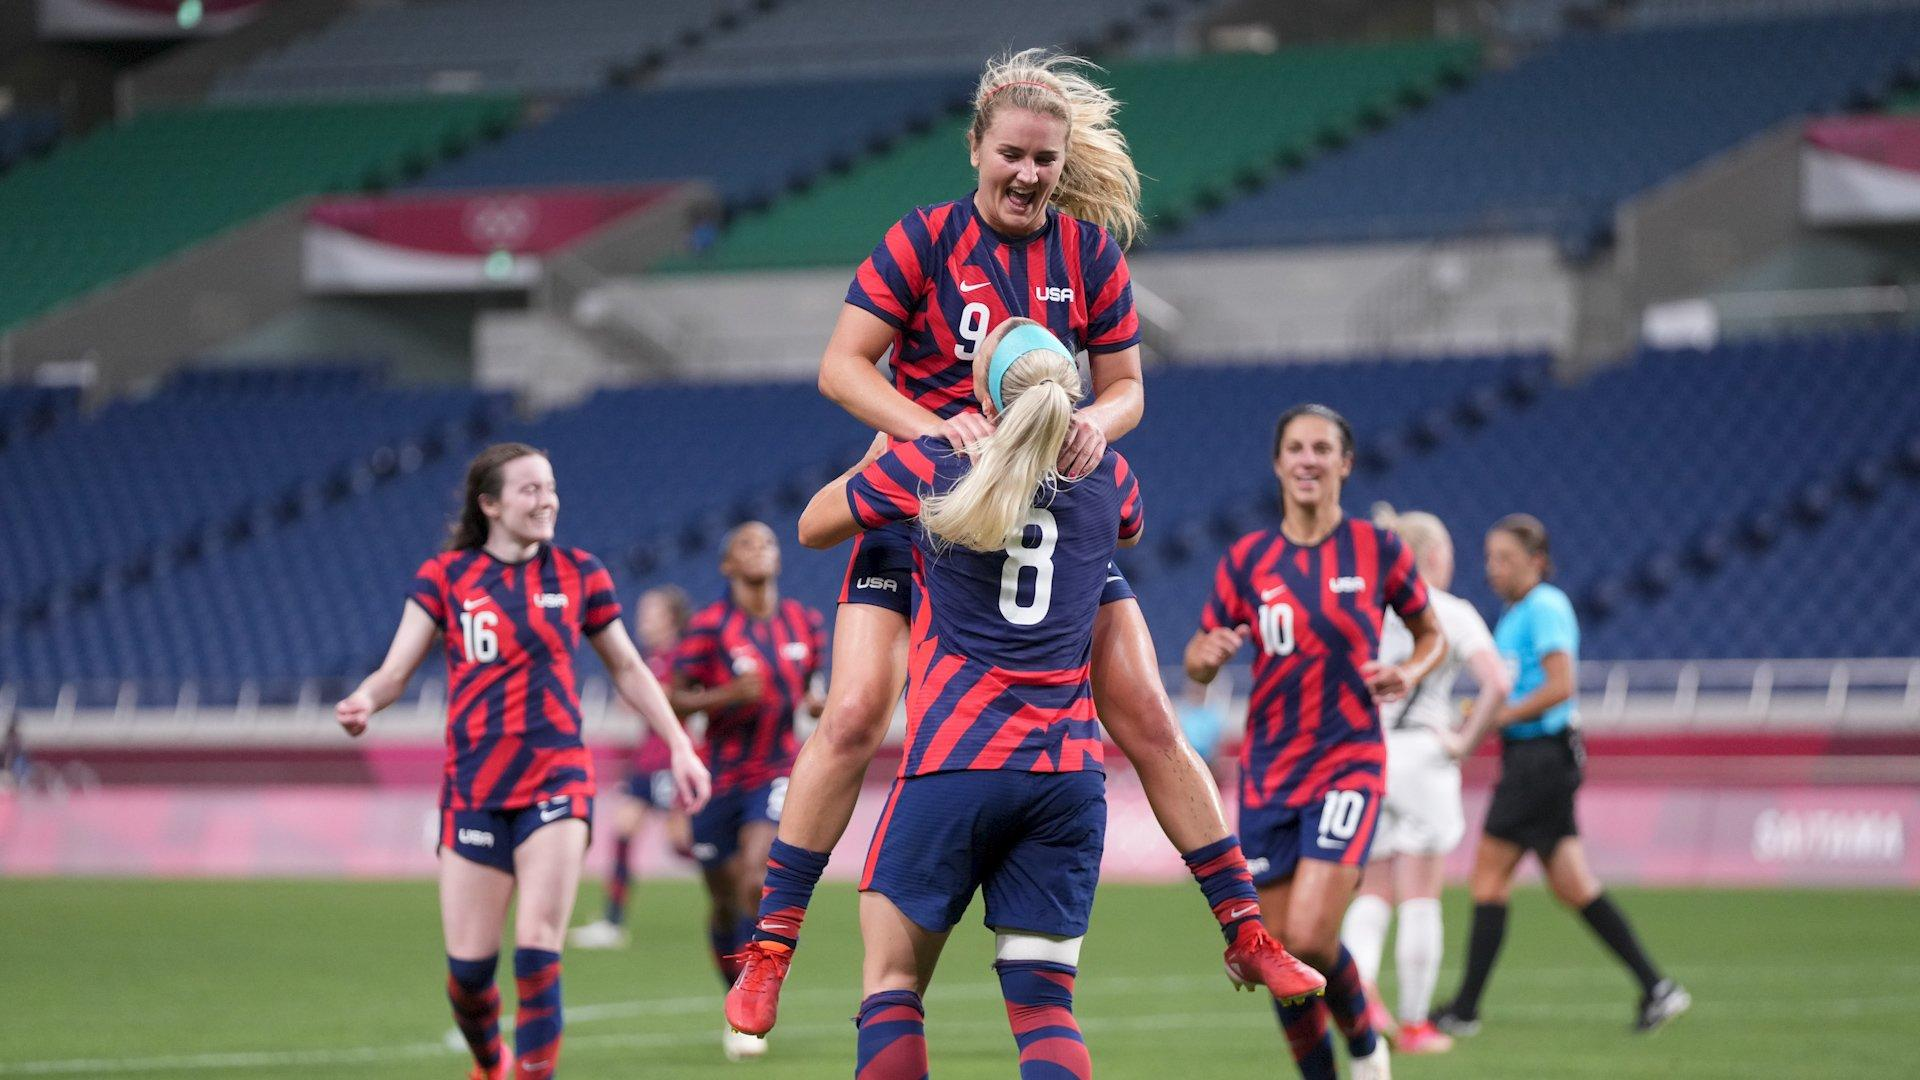 us.-women's-soccer-faces-australia-in-critical-group-play-match